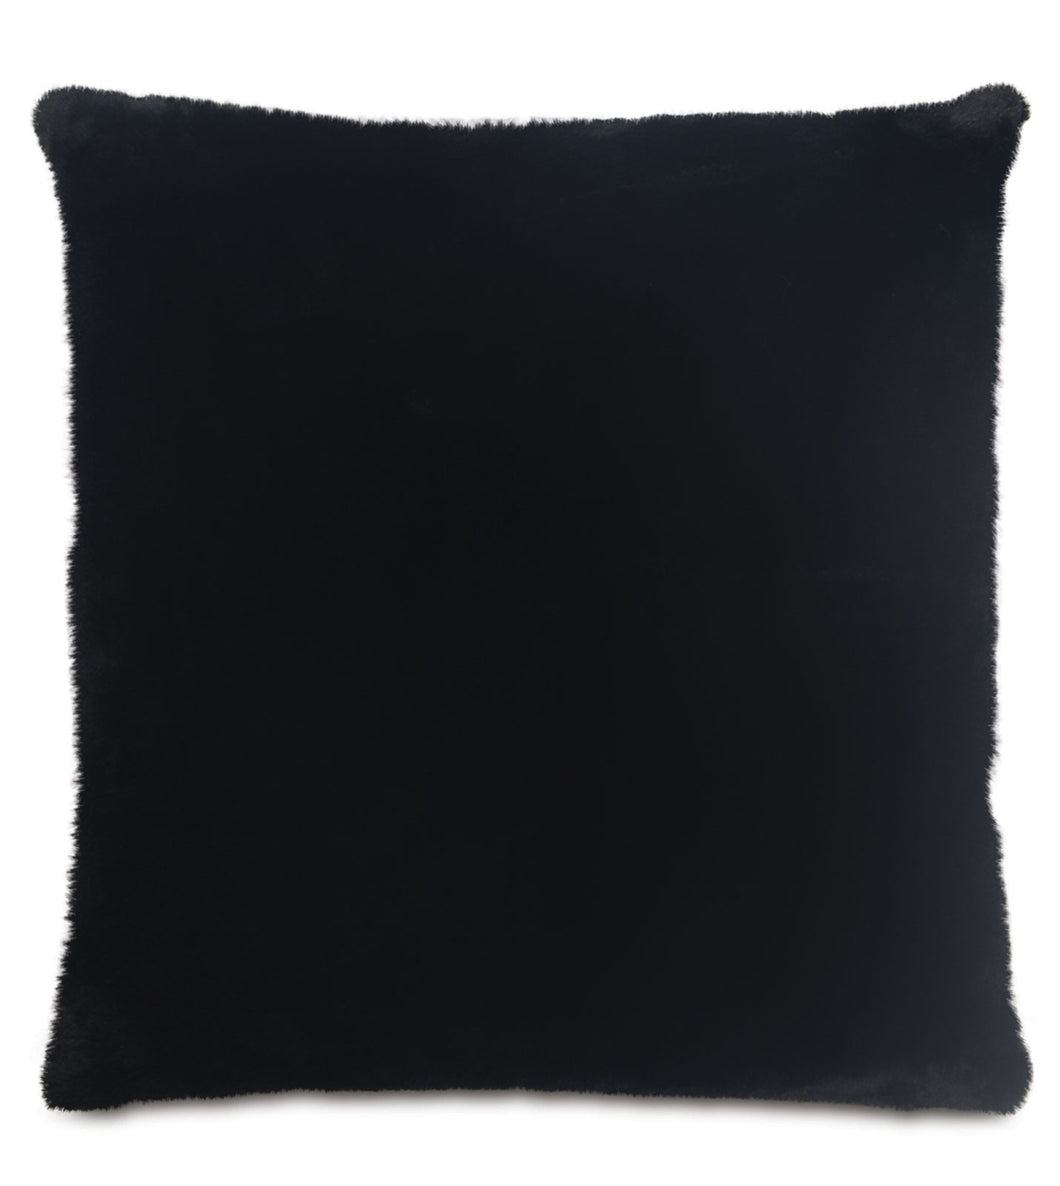 Onyx Lodge Solid Faux Fur Knife Edge Lumbar Pillow